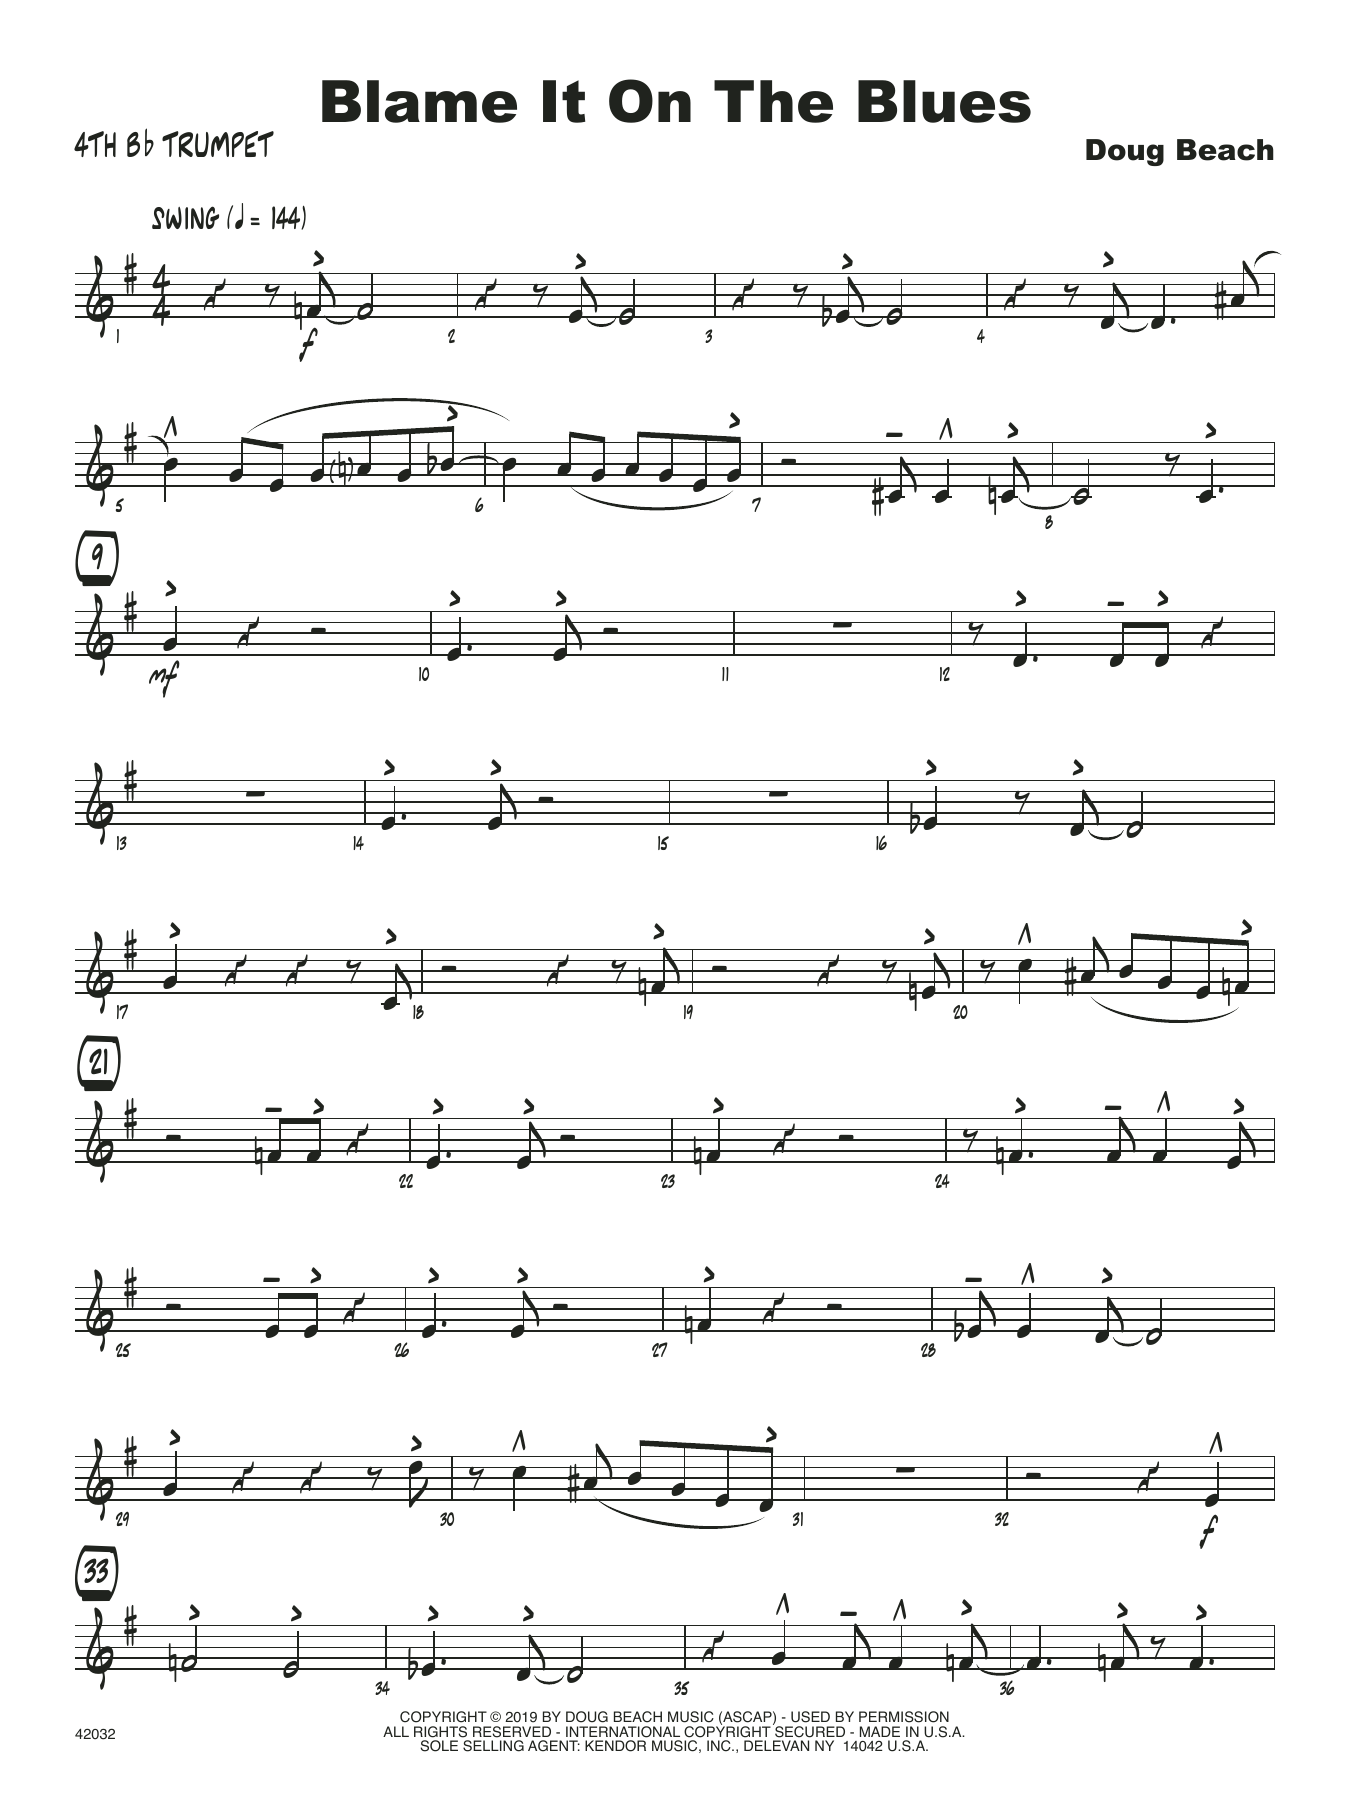 Doug Beach Blame It On The Blues - 4th Bb Trumpet sheet music notes and chords. Download Printable PDF.